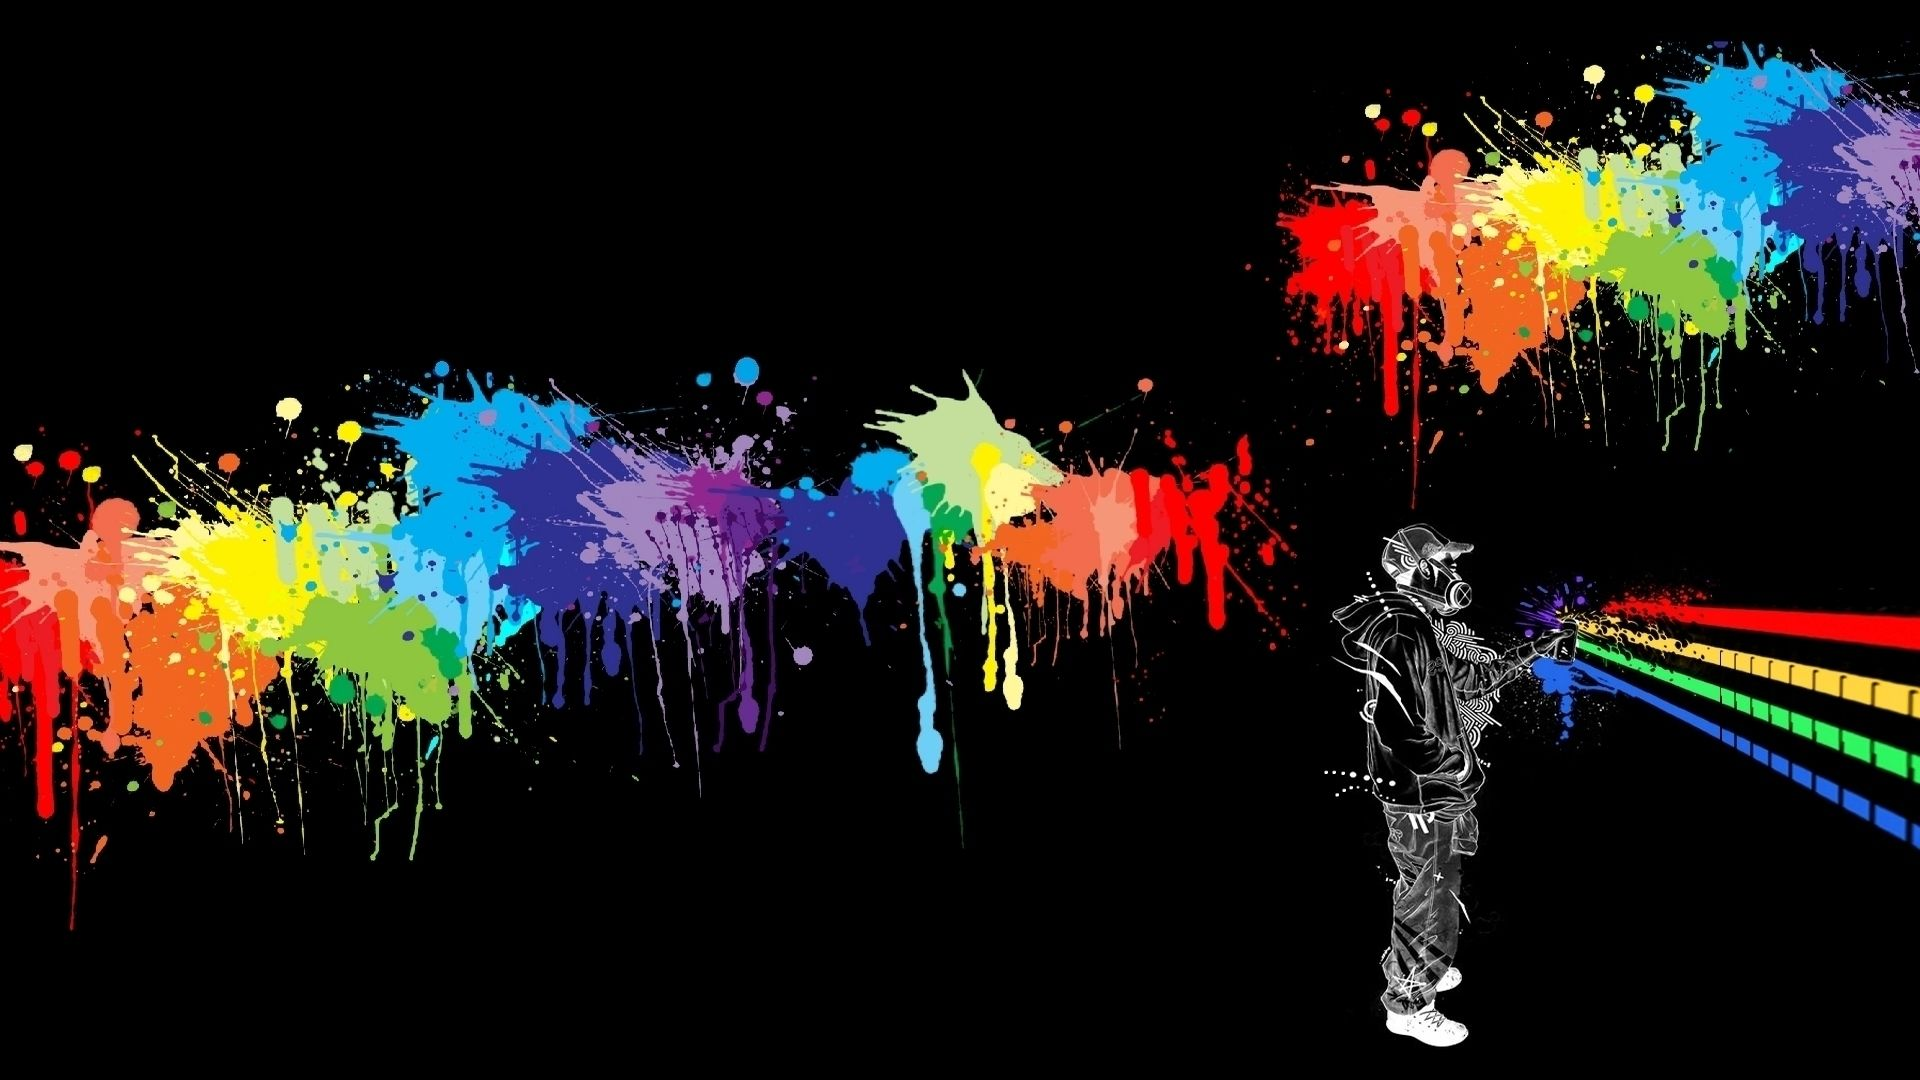 Cool Artistic Wallpapers